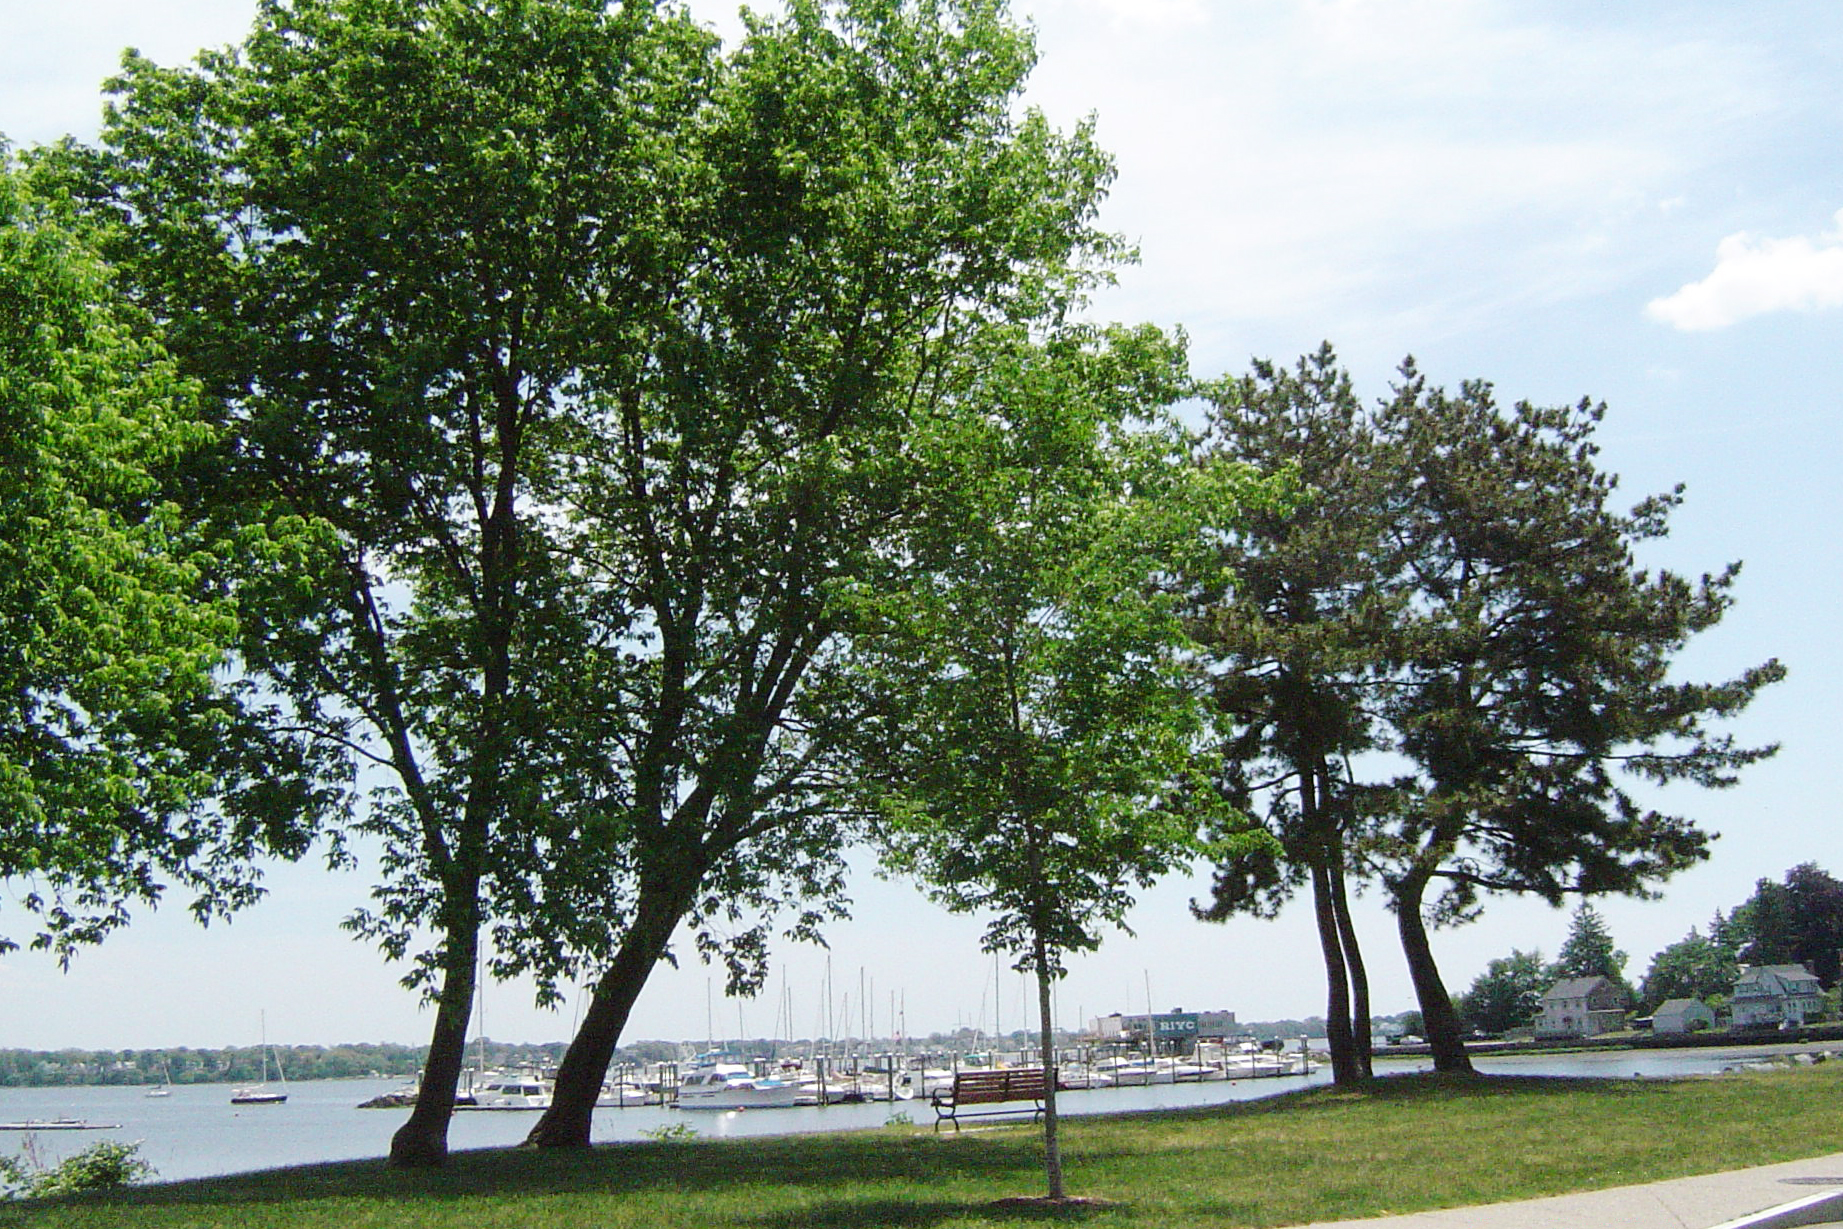 Cranston, Rhode Island. This city south of Providence shares the Narragansett Bay and is home to Pawtuxet Village, an emerging foodie destination.